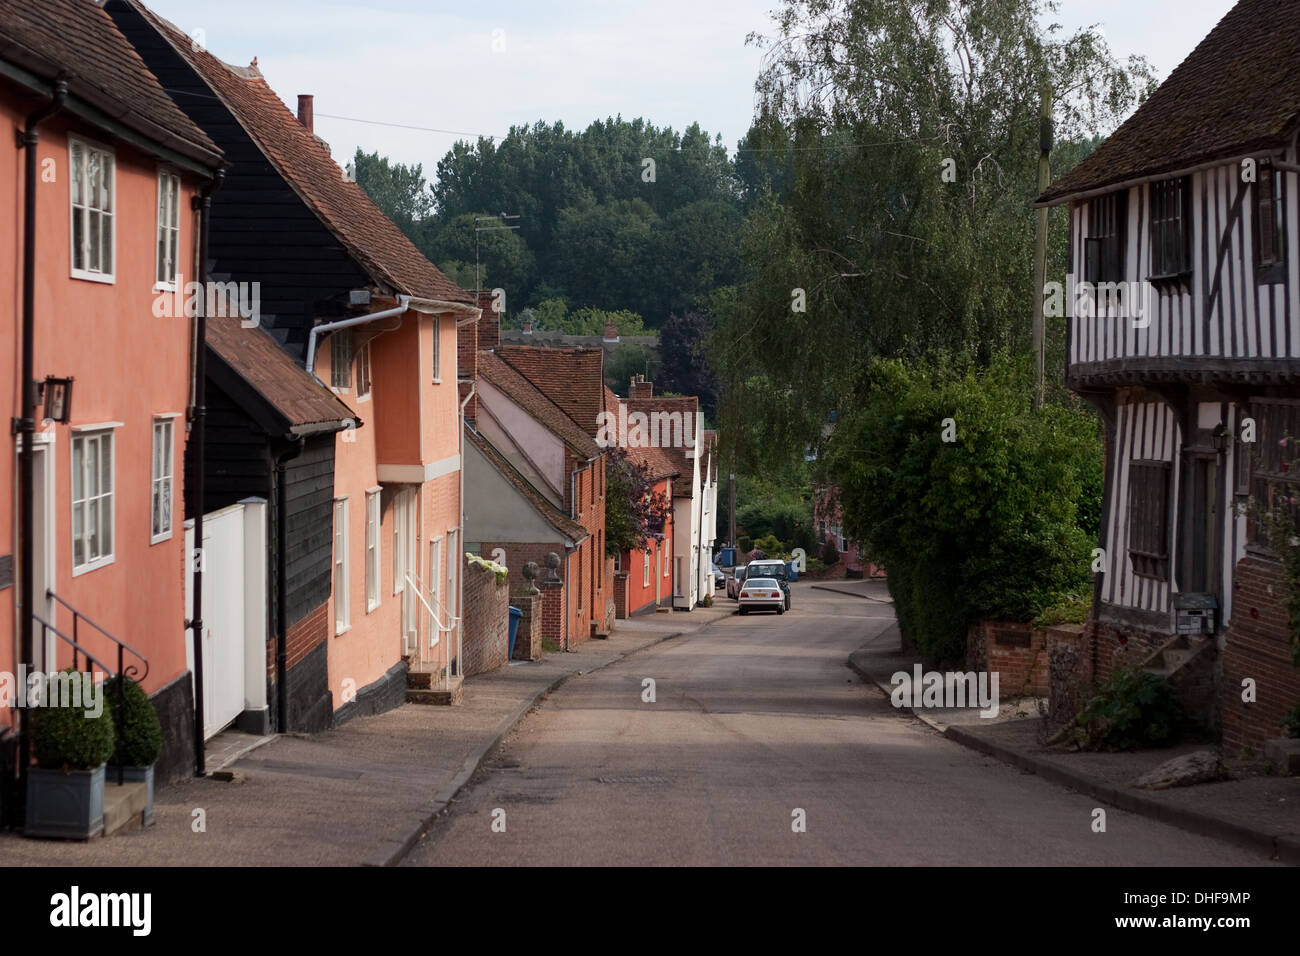 View down the street in Kersey, Suffolk - Stock Image